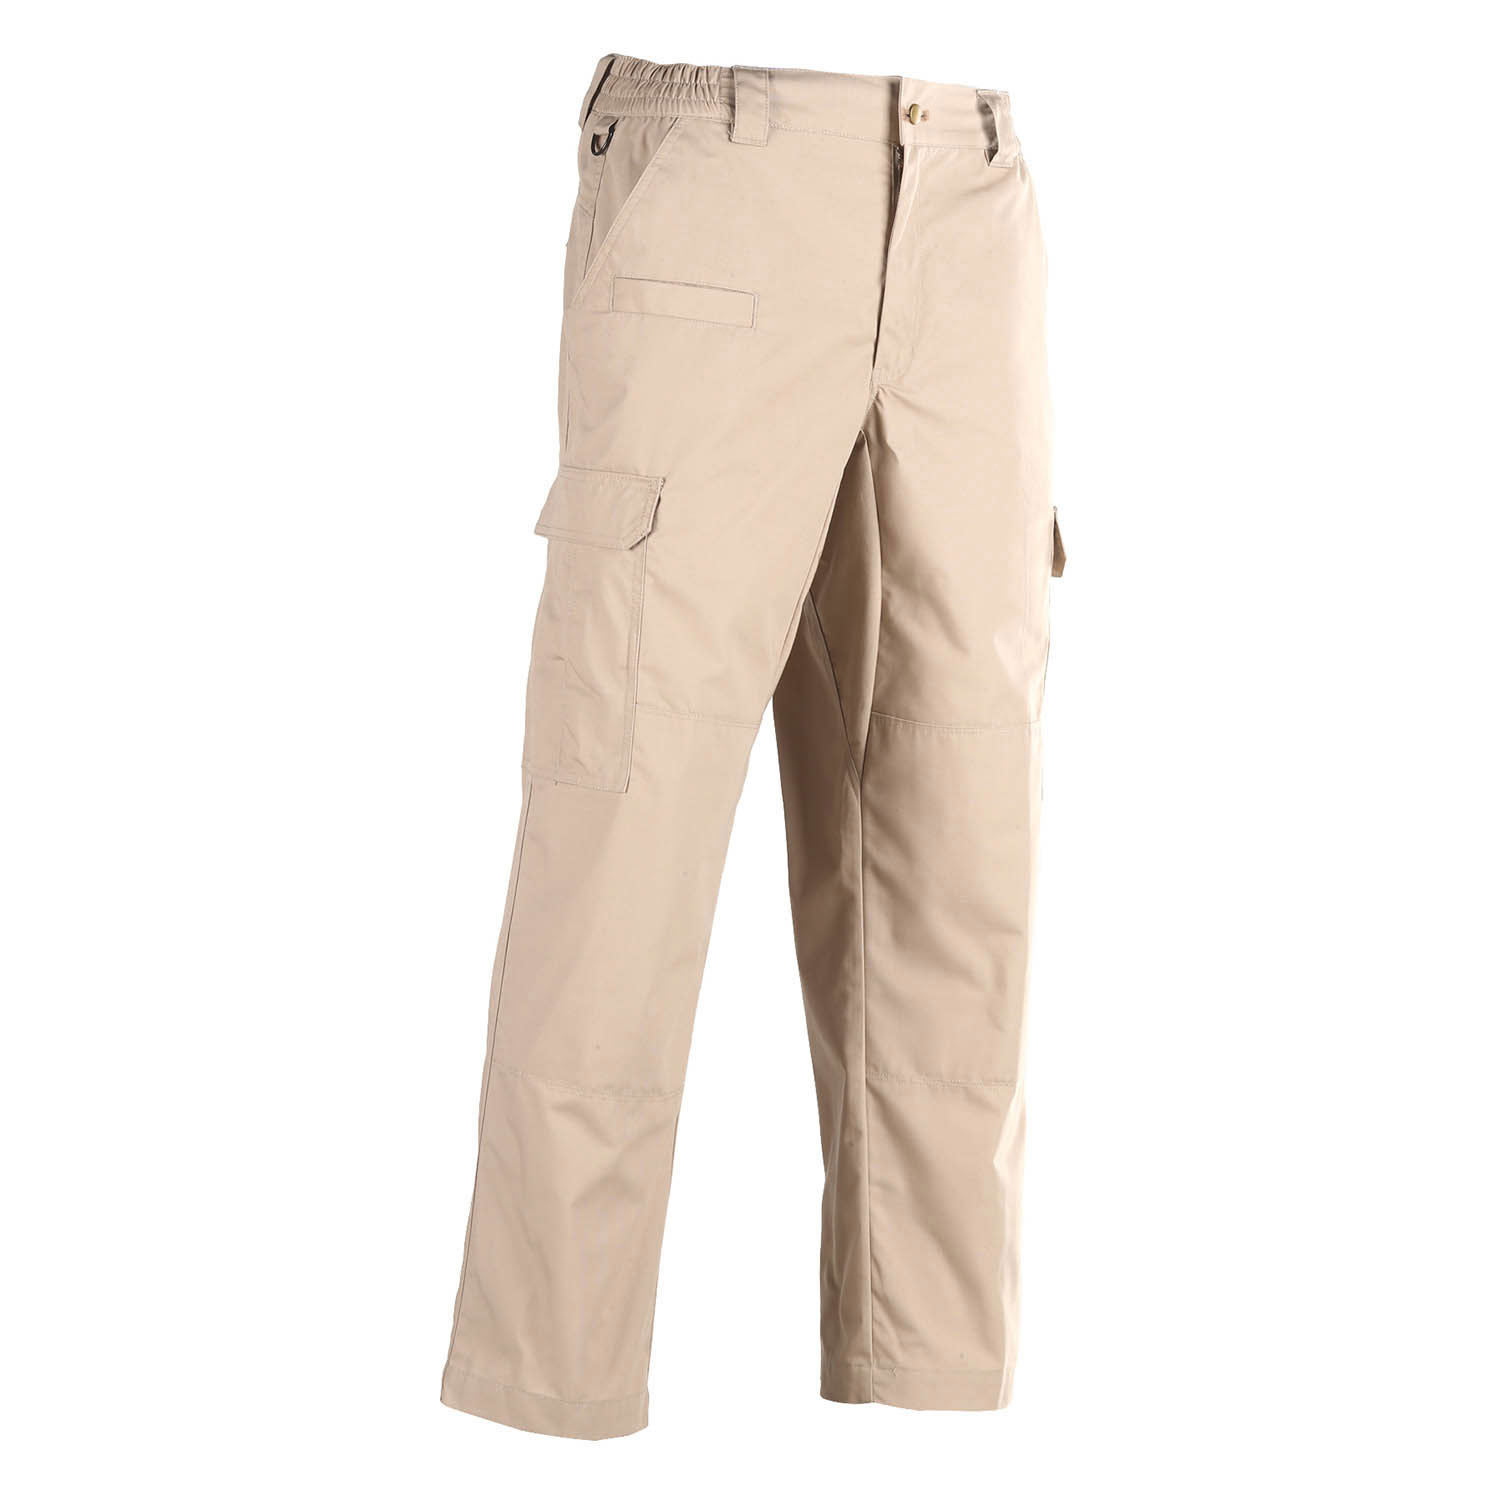 Galls Tac Force Tactical Pants